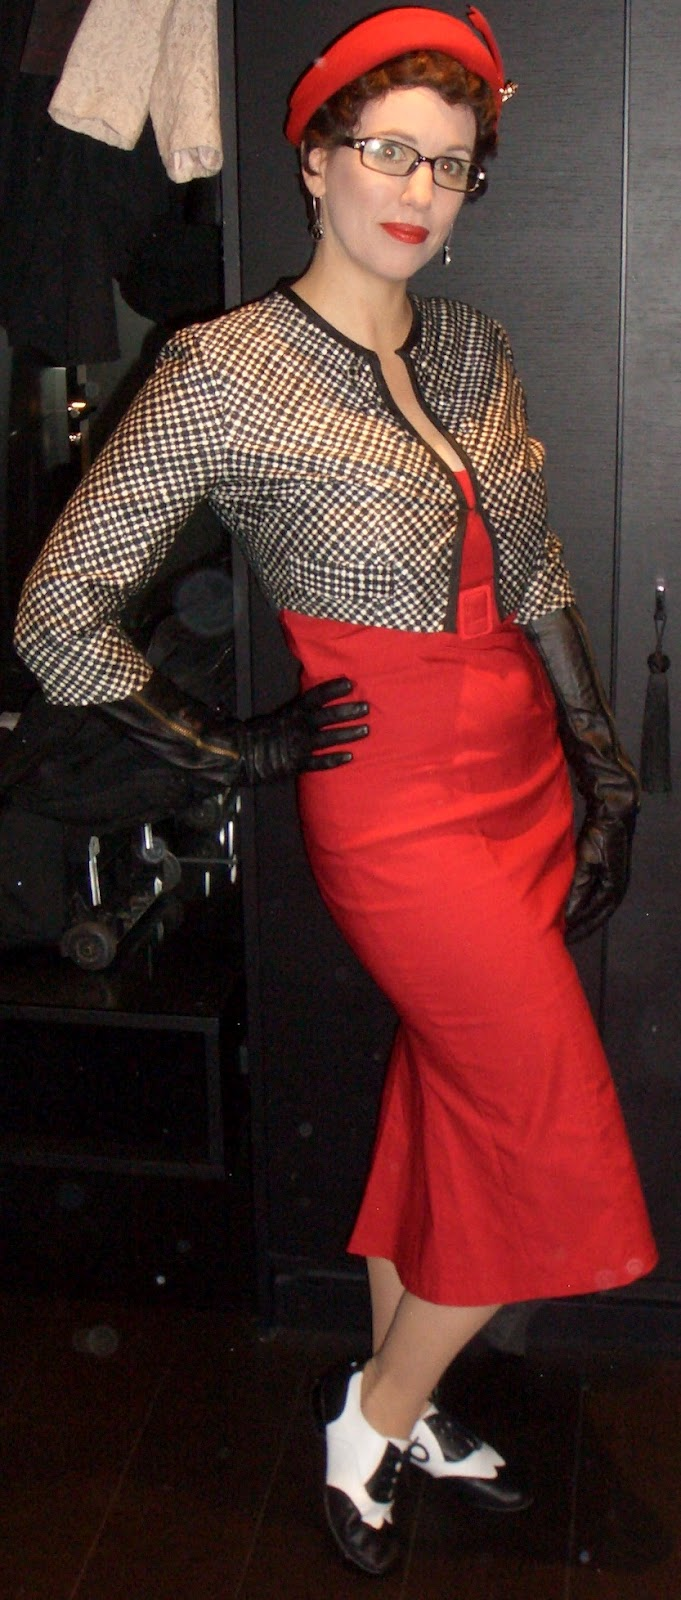 Retro Rack The Red Jessica Wiggle Dress By Gail Carriger